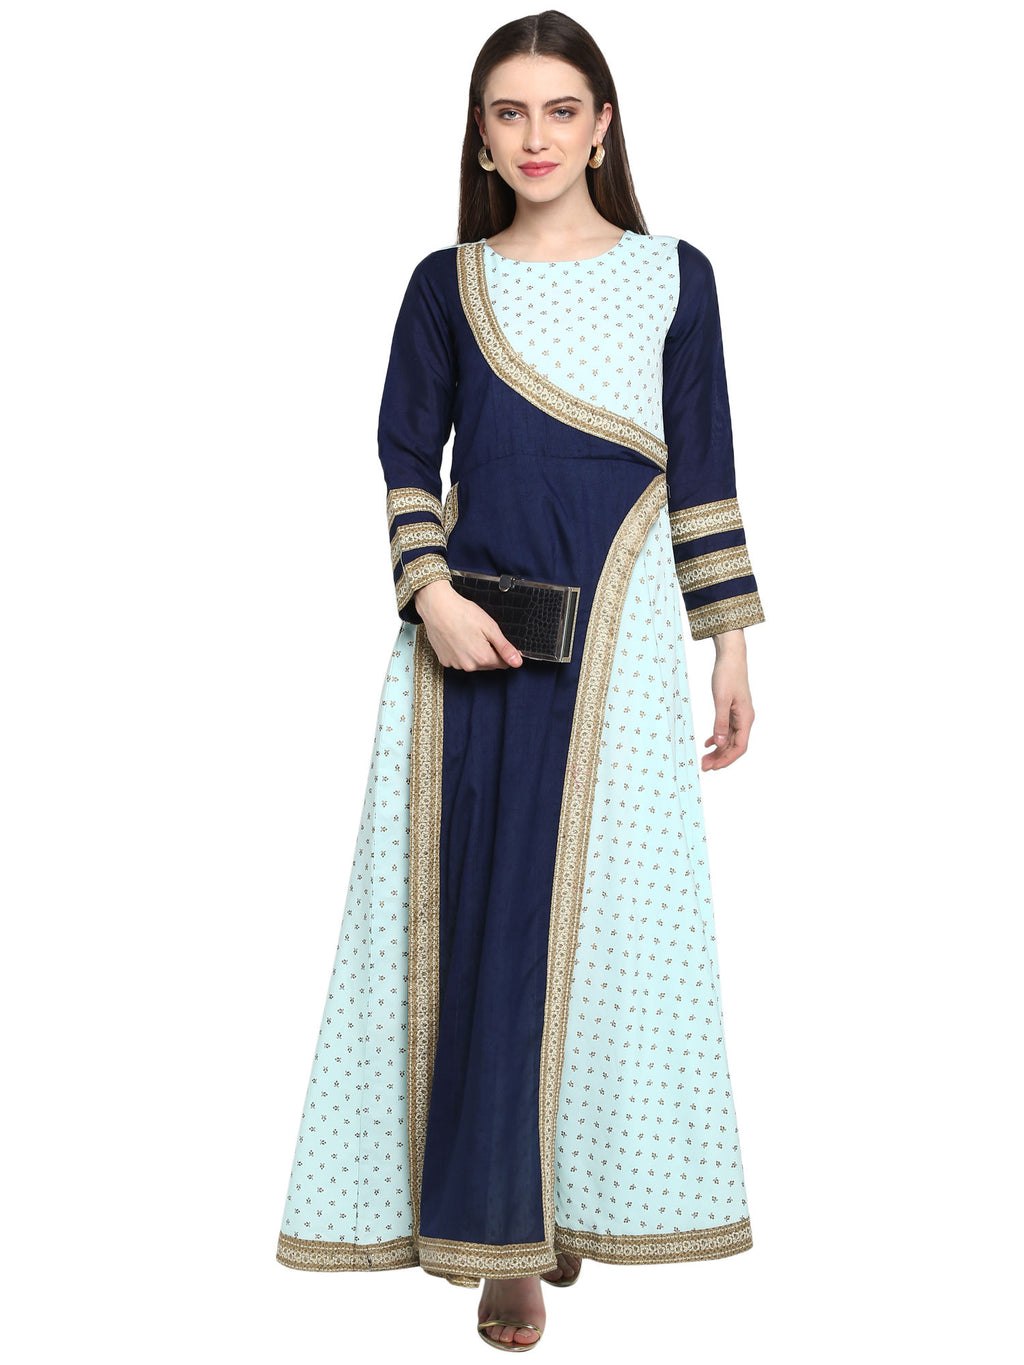 Blue Printed Kurta Style Dress - Riviera Closet